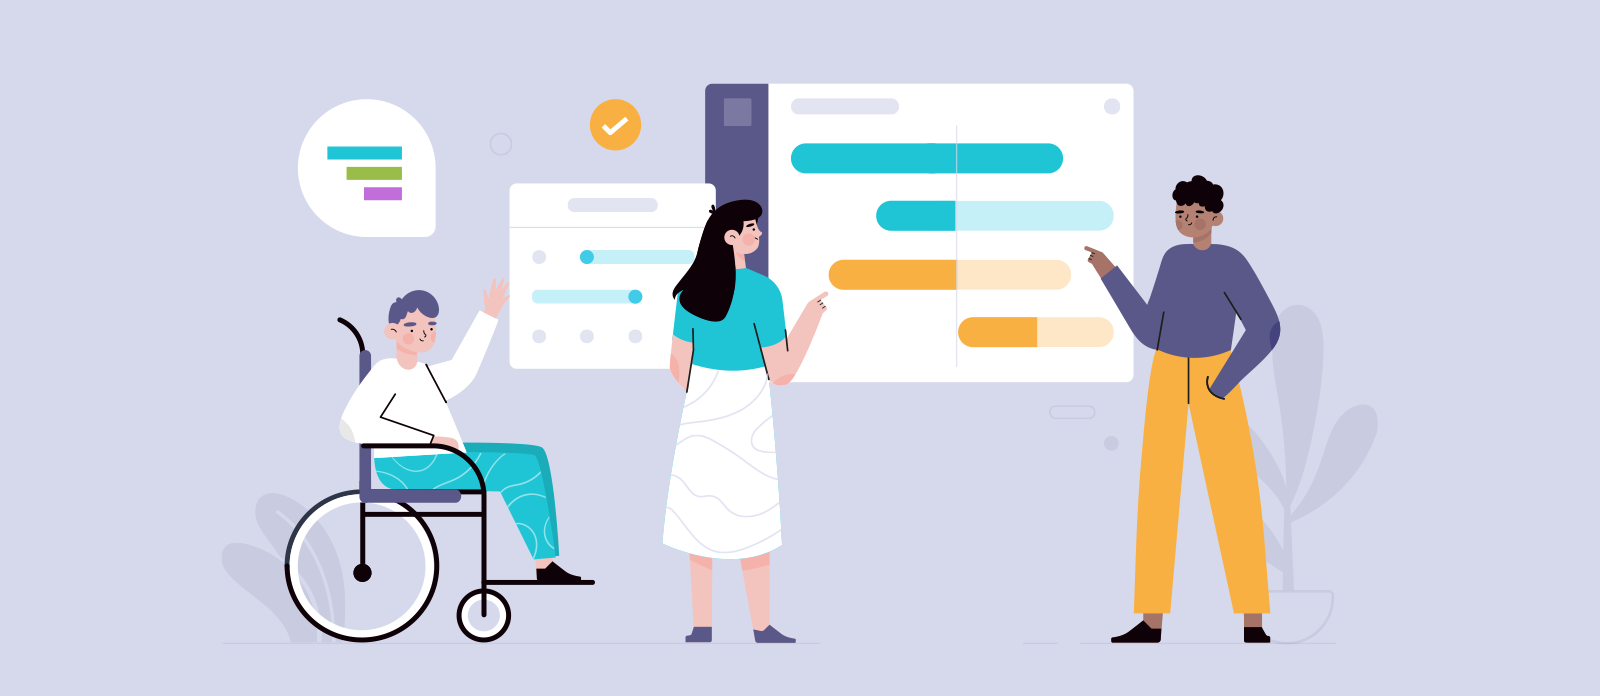 How to get your team on board using TeamGantt